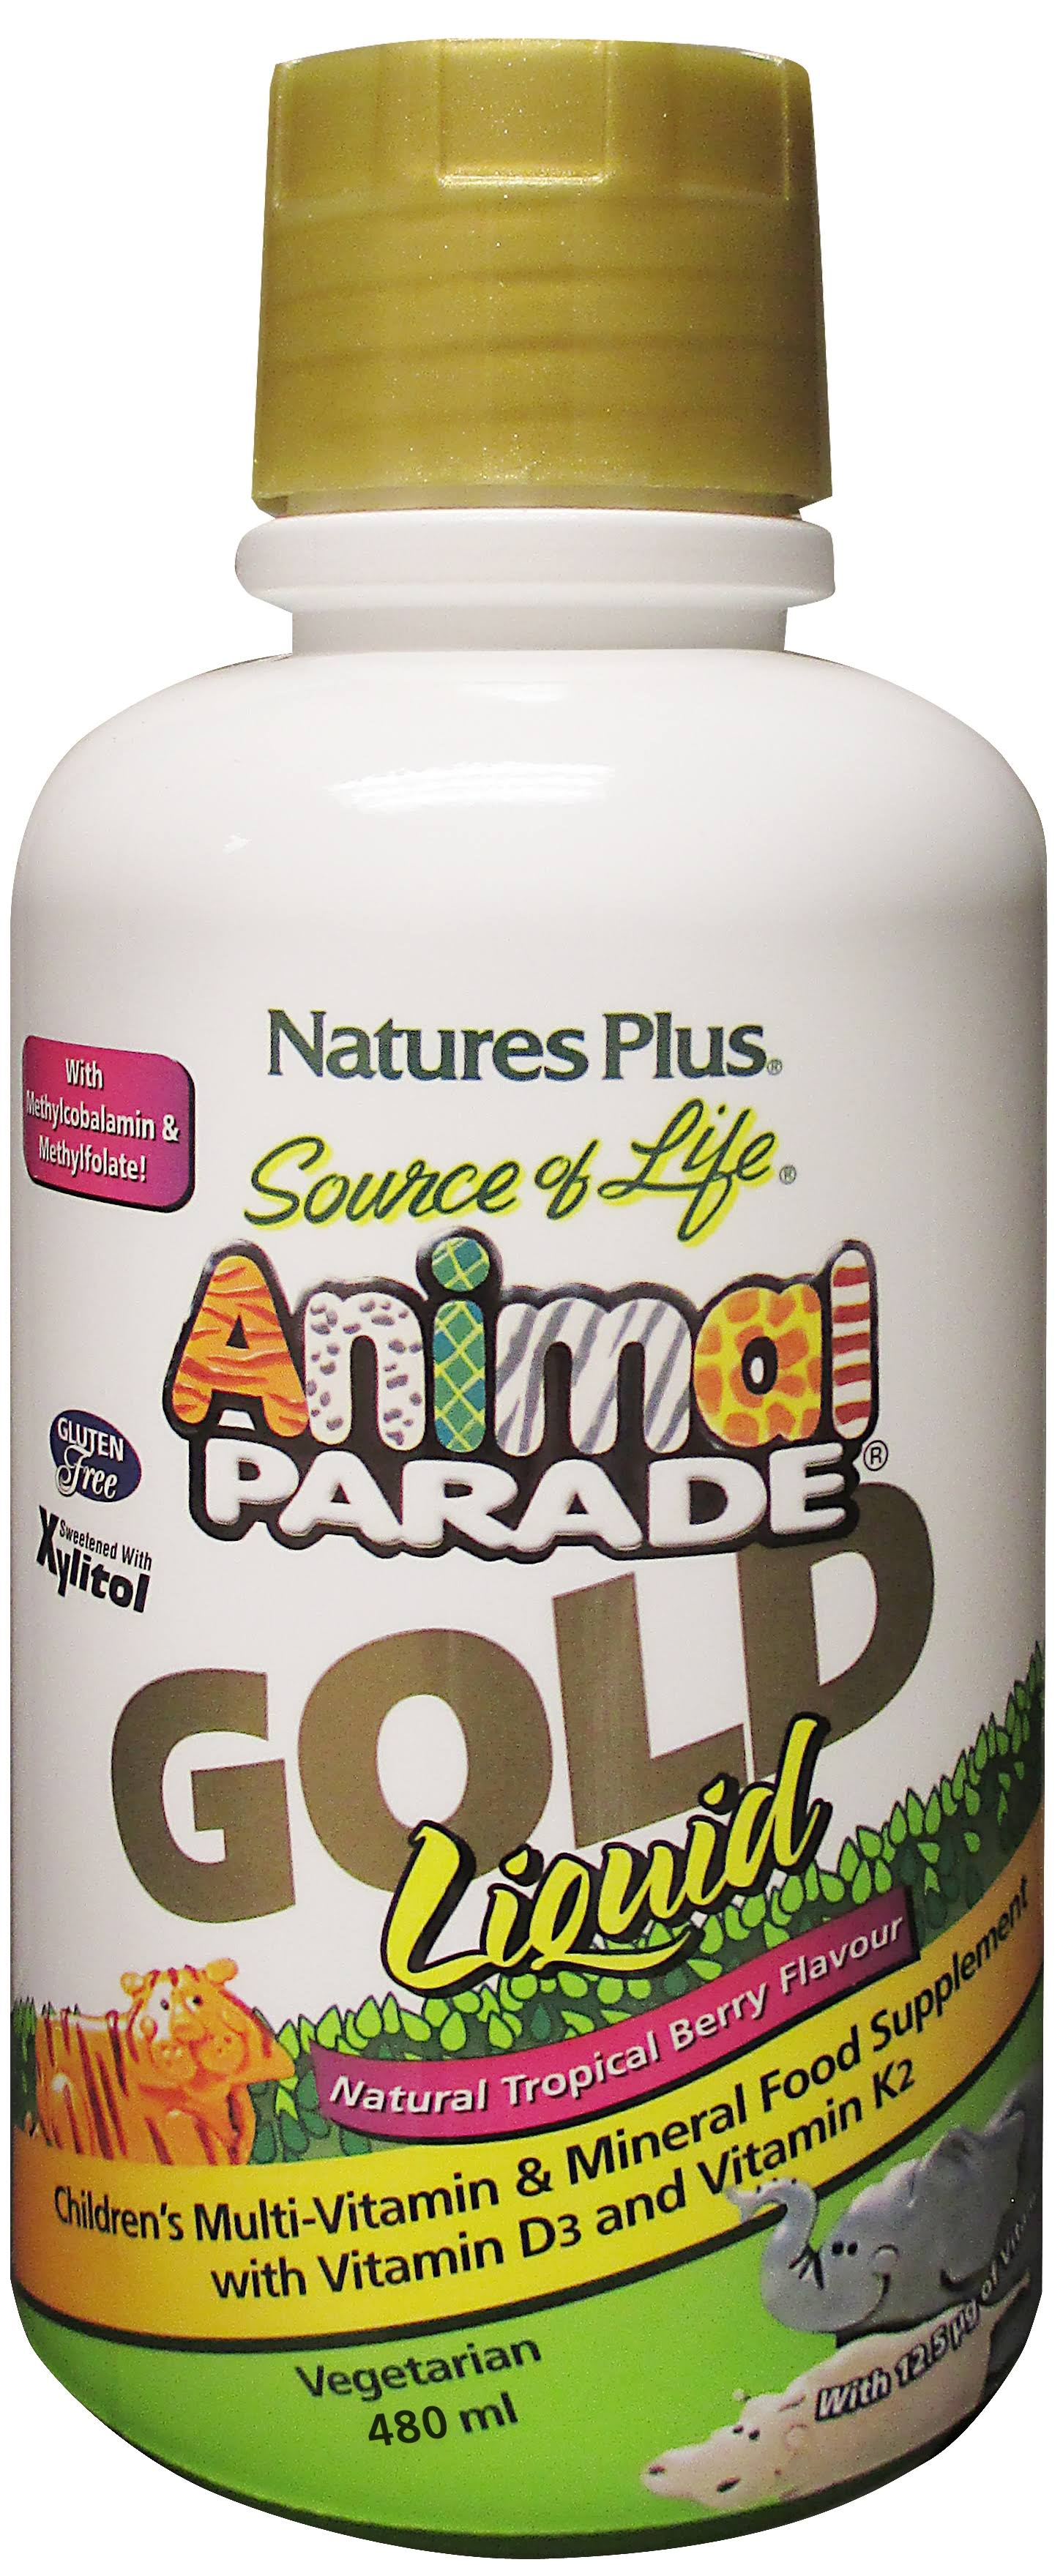 Source of Life Animal Parade Gold Liquid Children's Multivitamin